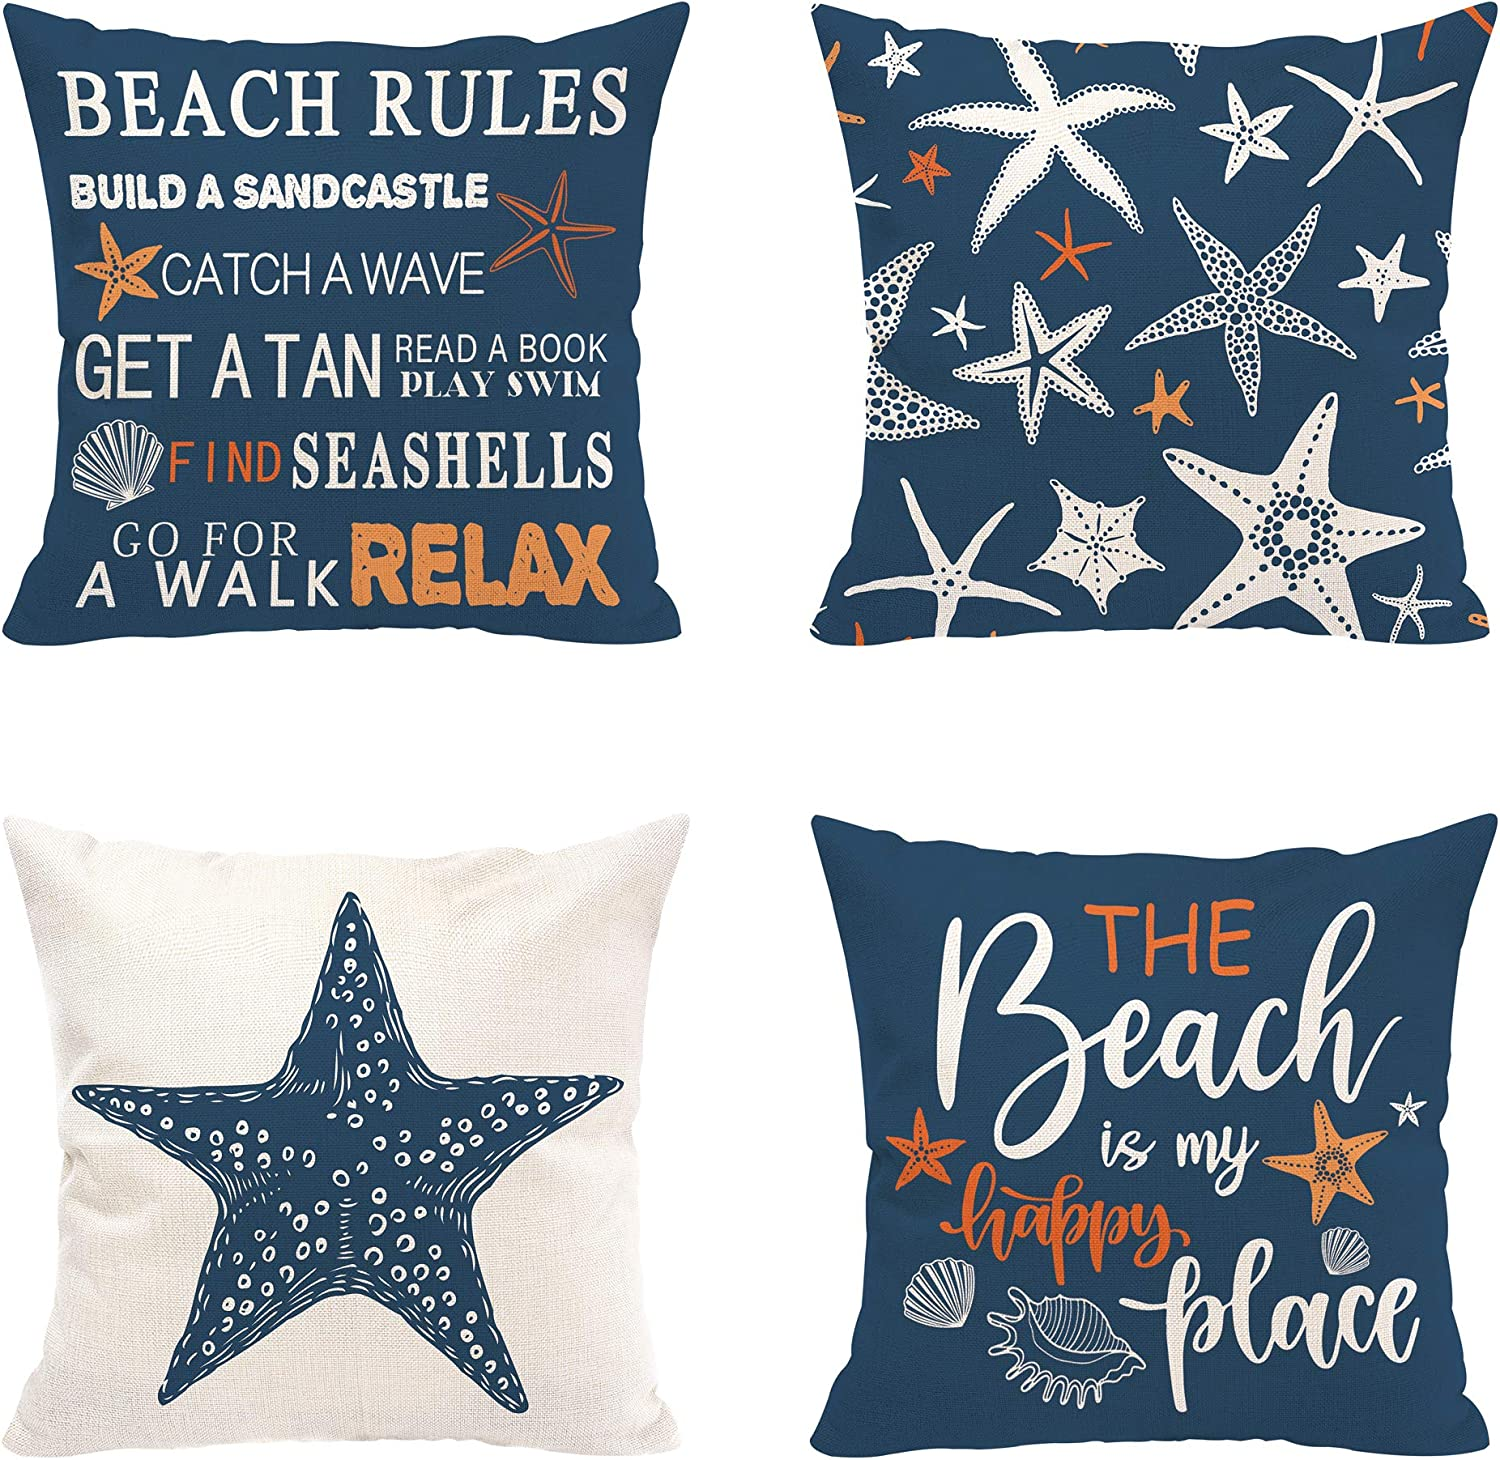 Hexagram Summer Beach Pillow Covers 18x18 Set of 4, Blue Throw Pillow Covers, Starfish Beach Rules Quotes Decor Summer Pillow Cover for Living Room Couch Sofa Bed, Outdoor Home Decor Cushion Covers